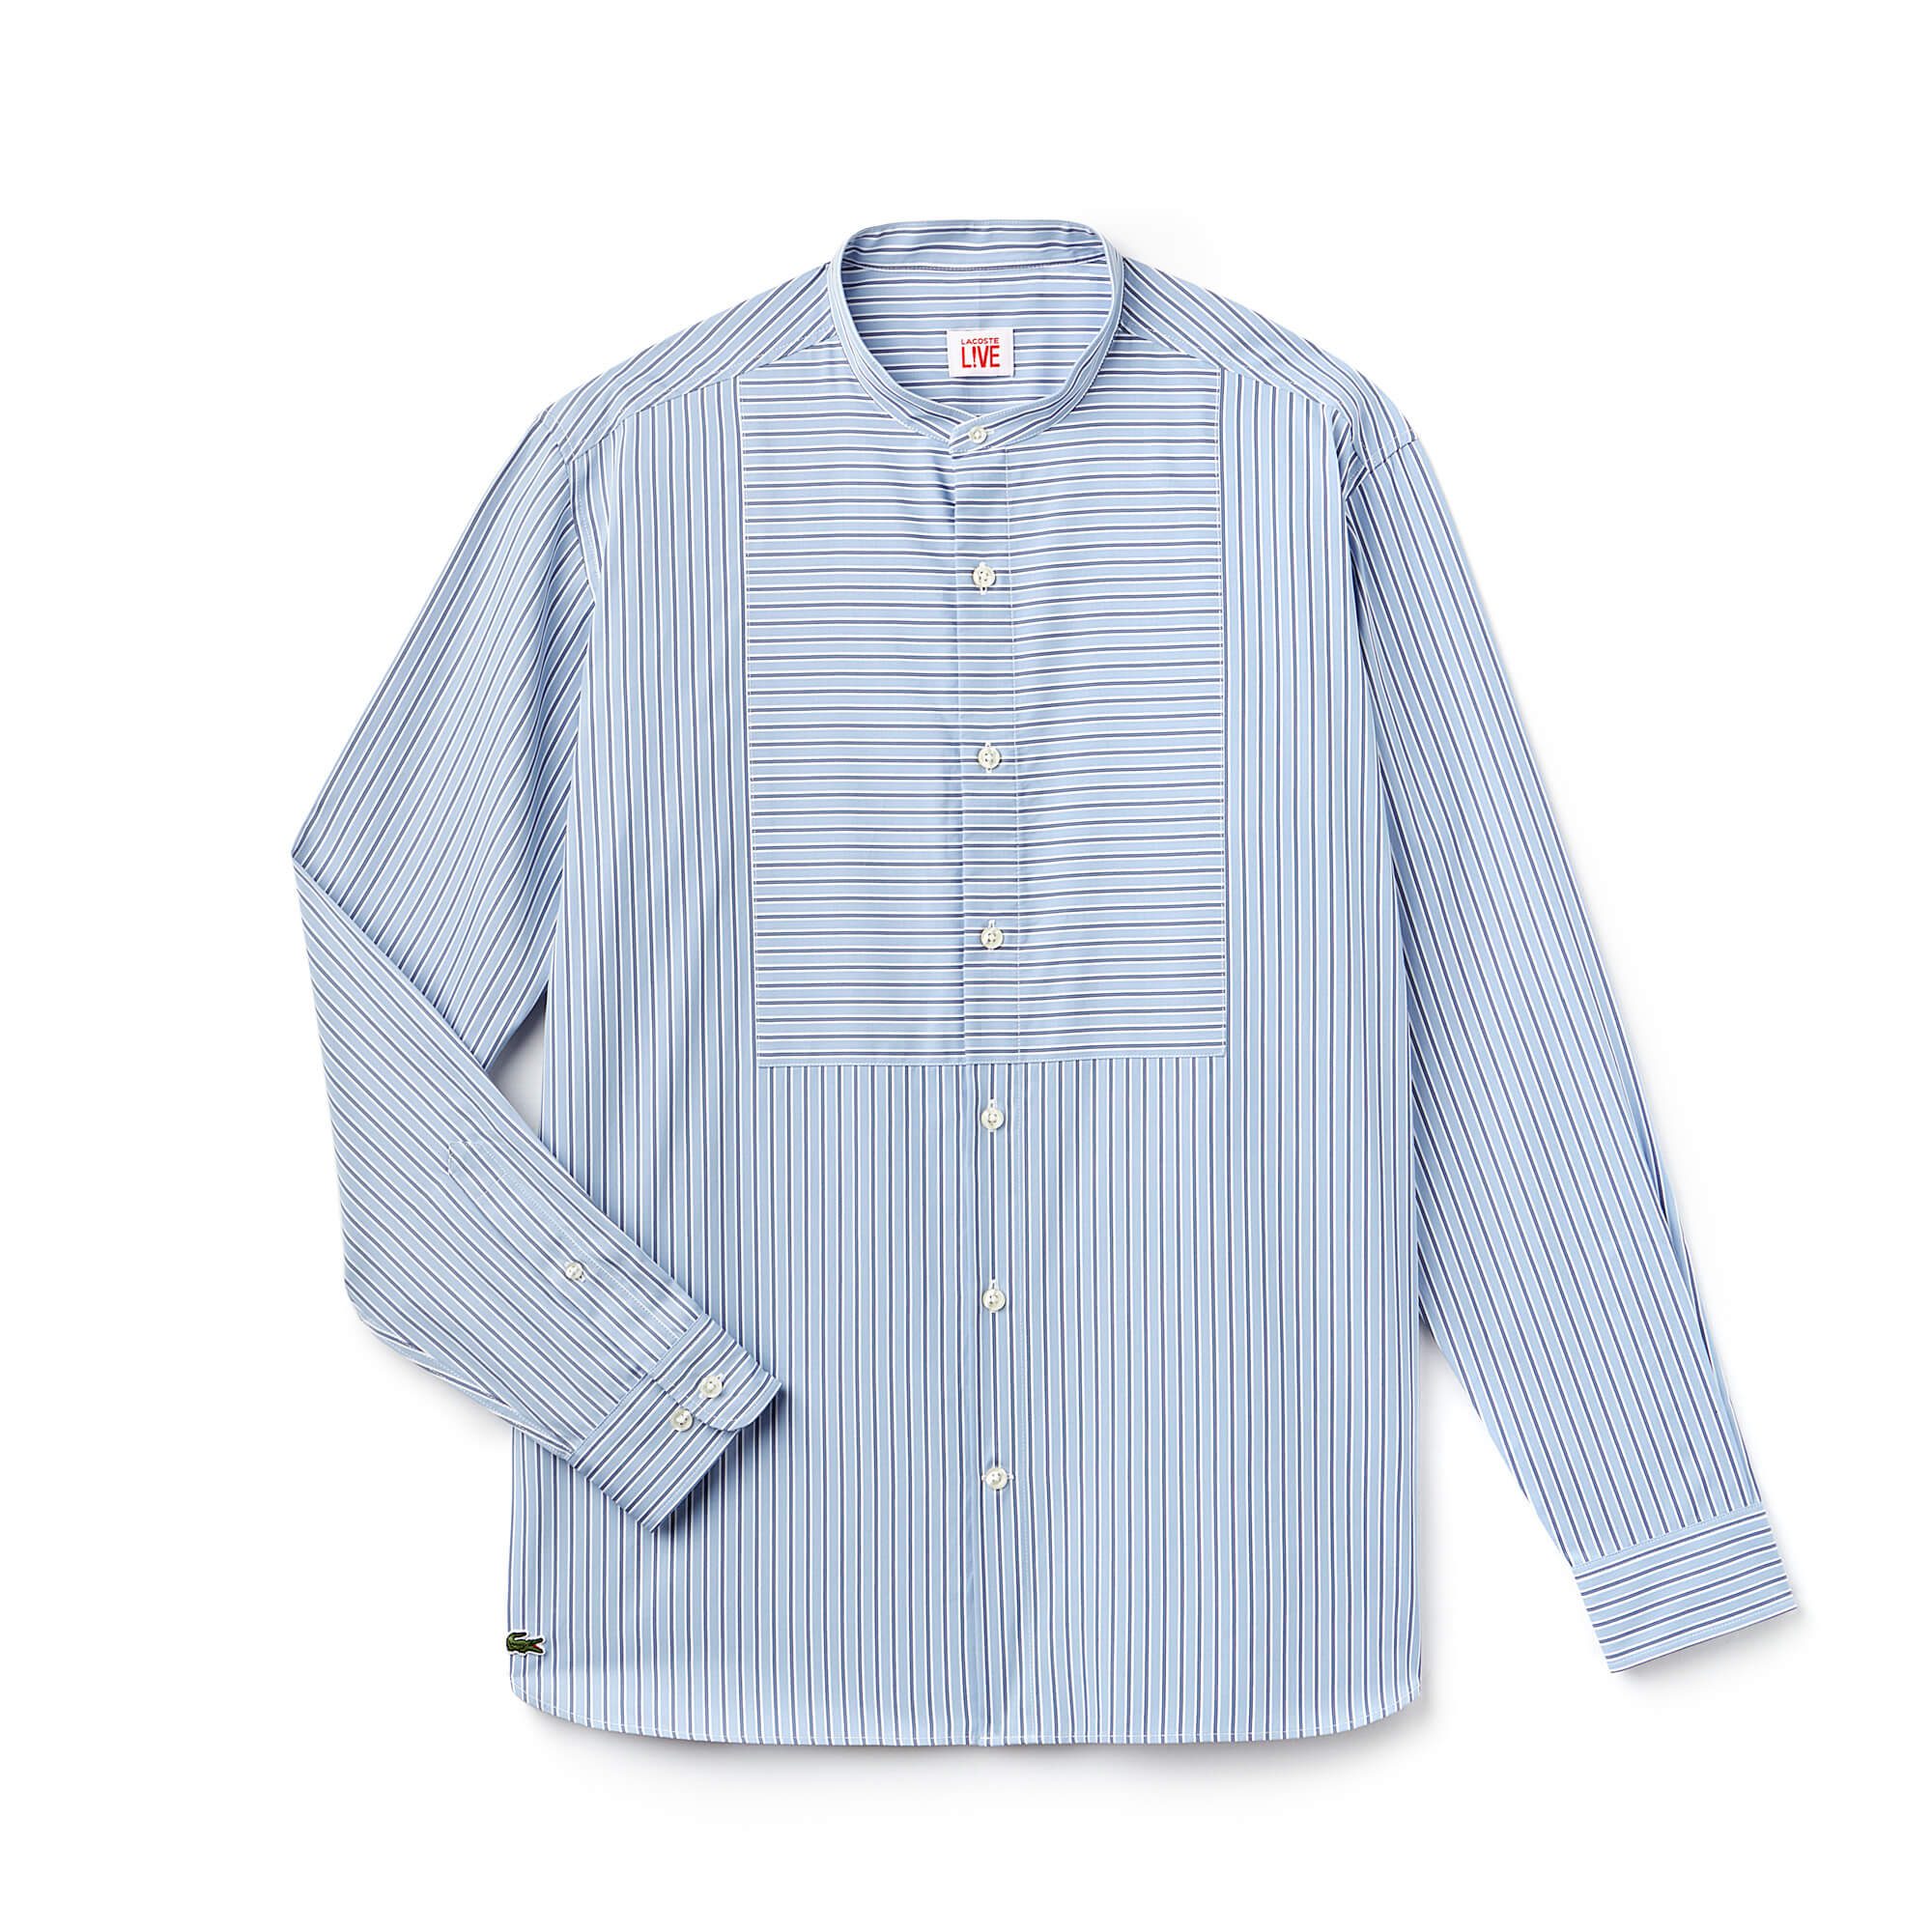 Men's Lacoste LIVE Boxy Fit Striped Poplin Shirt